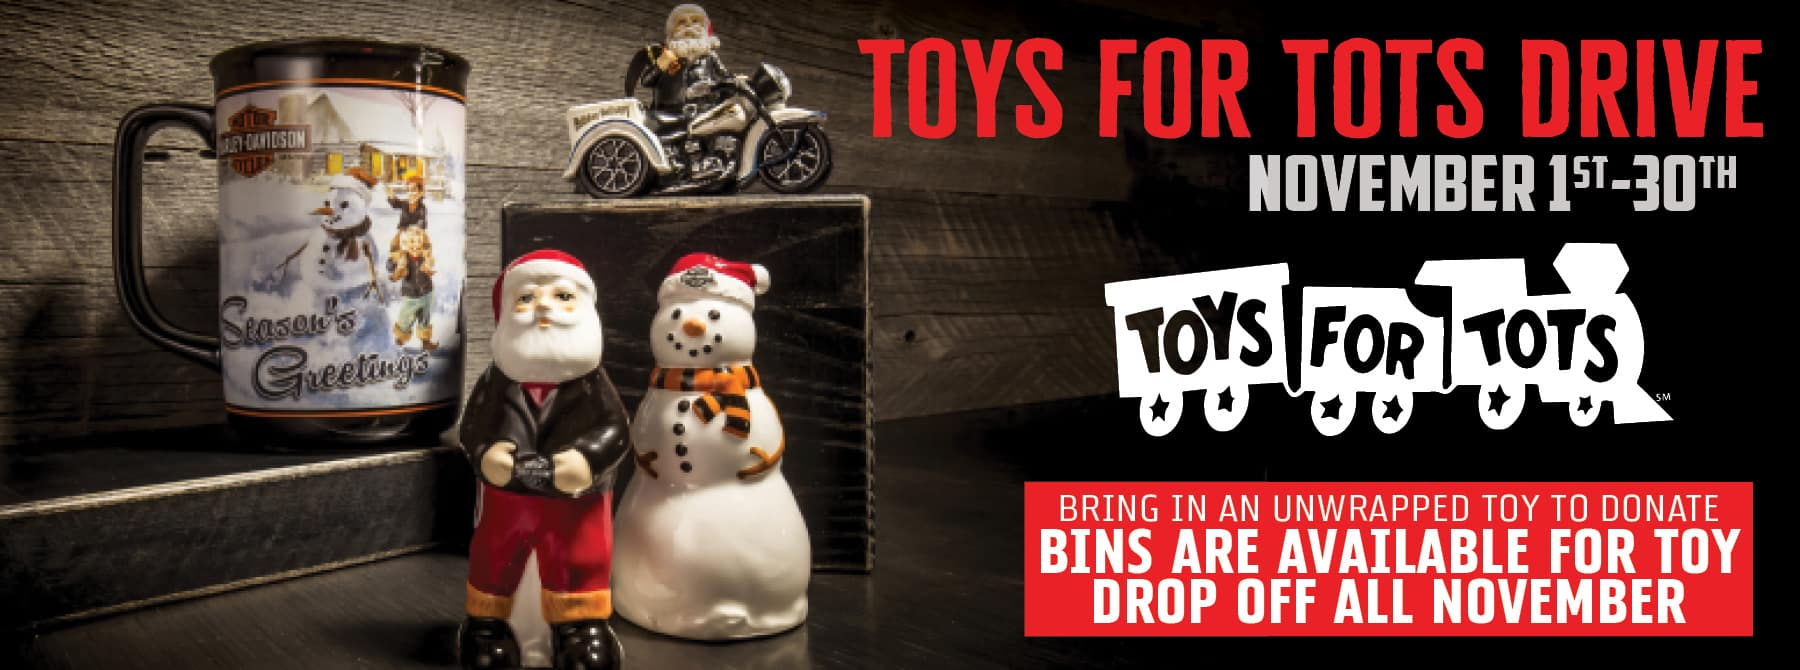 CA01_11_20_Toys_for_tots_1800x670_Rotator